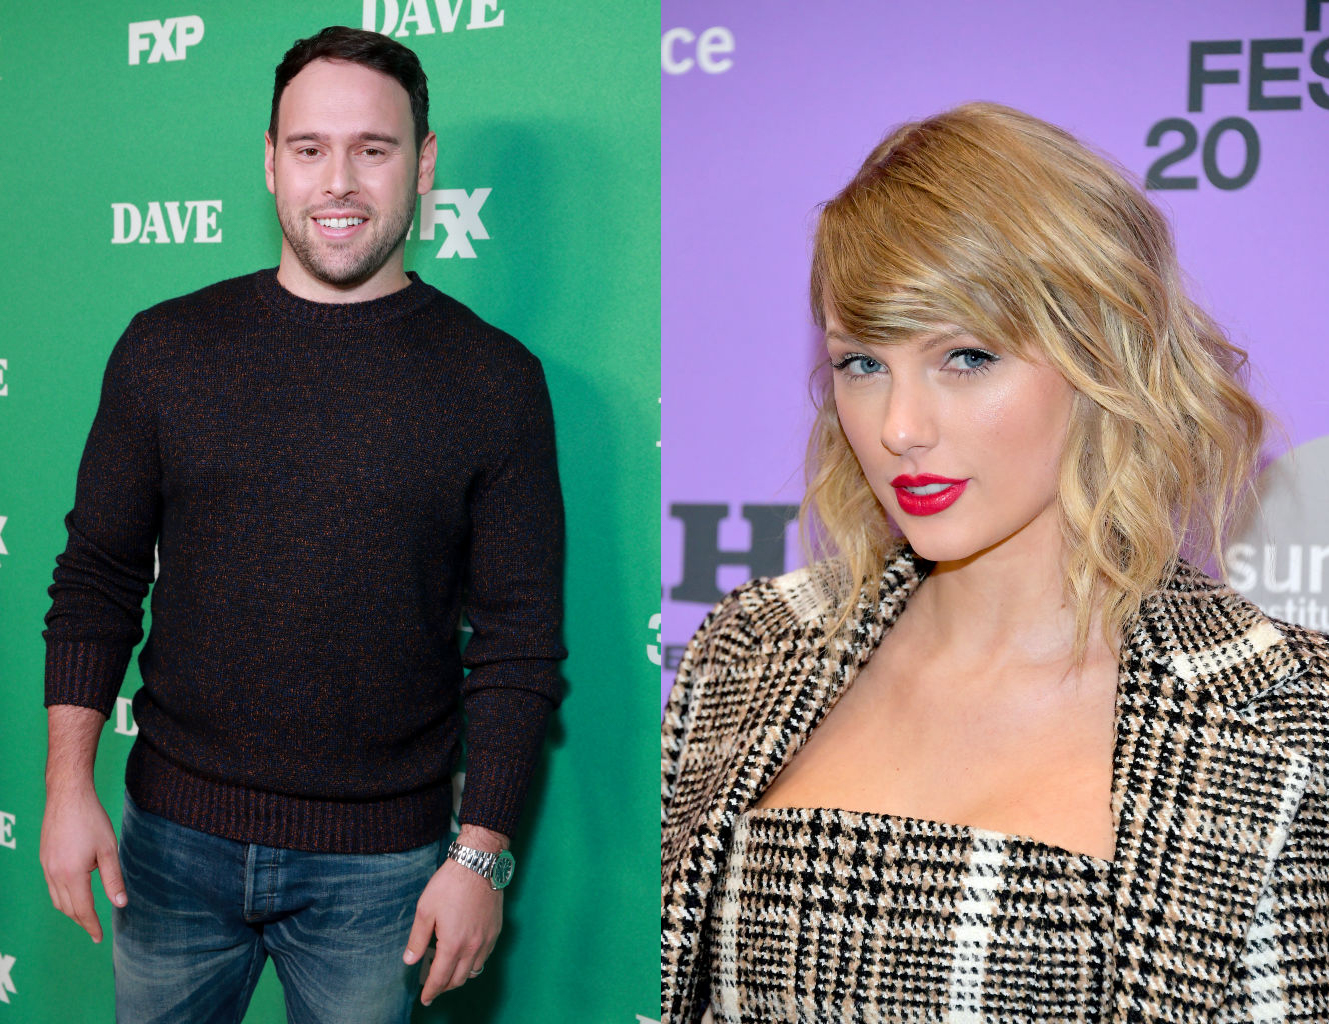 Scooter Braun Admits Full Mistake On Claiming Taylor Swift's Master Rights, Fans Mock Music Mogul's Statement Online